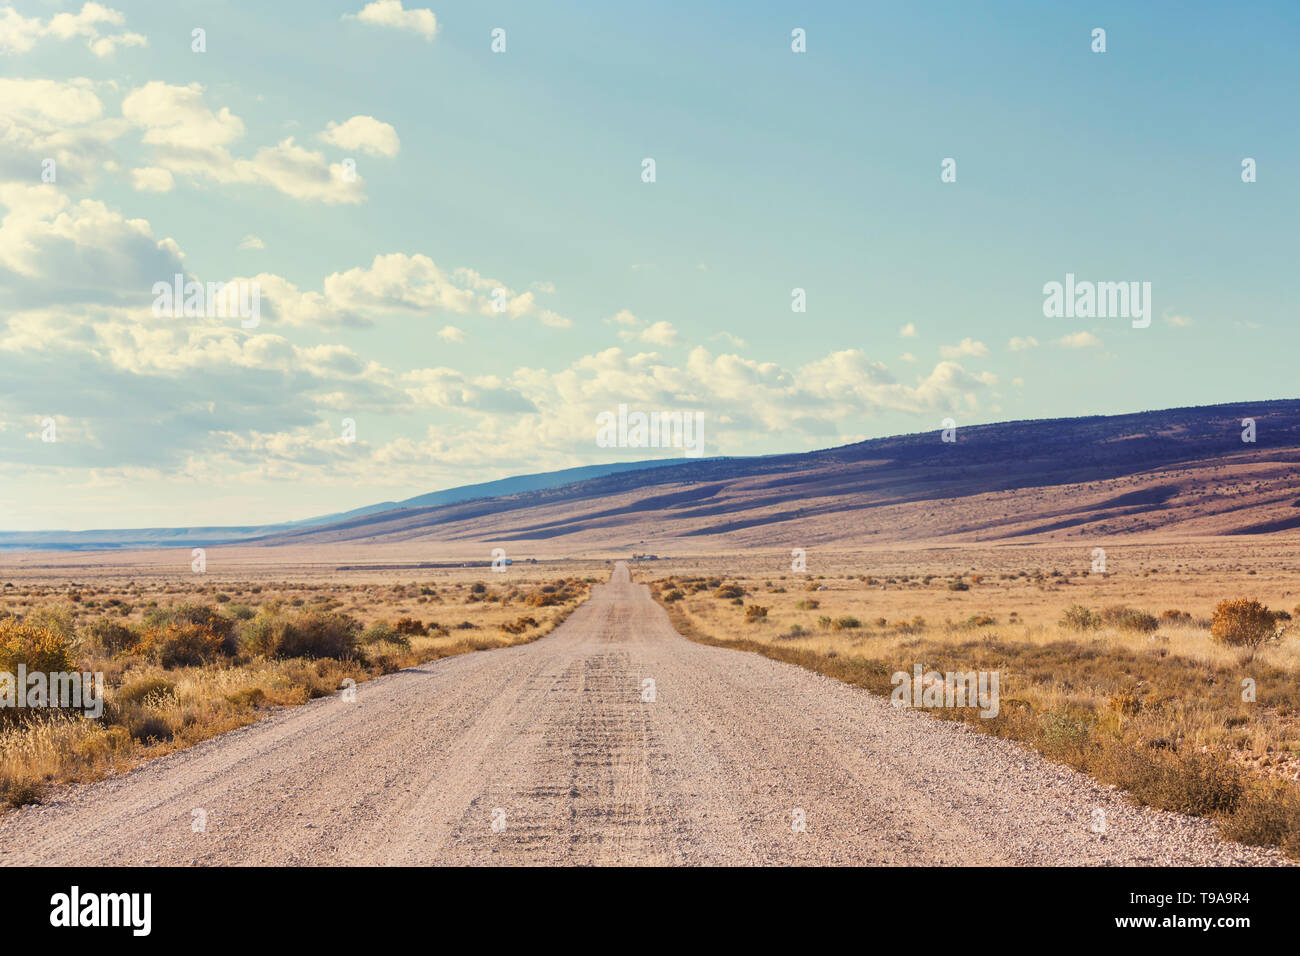 Road in the prairie country. Deserted natural travel background. - Stock Image